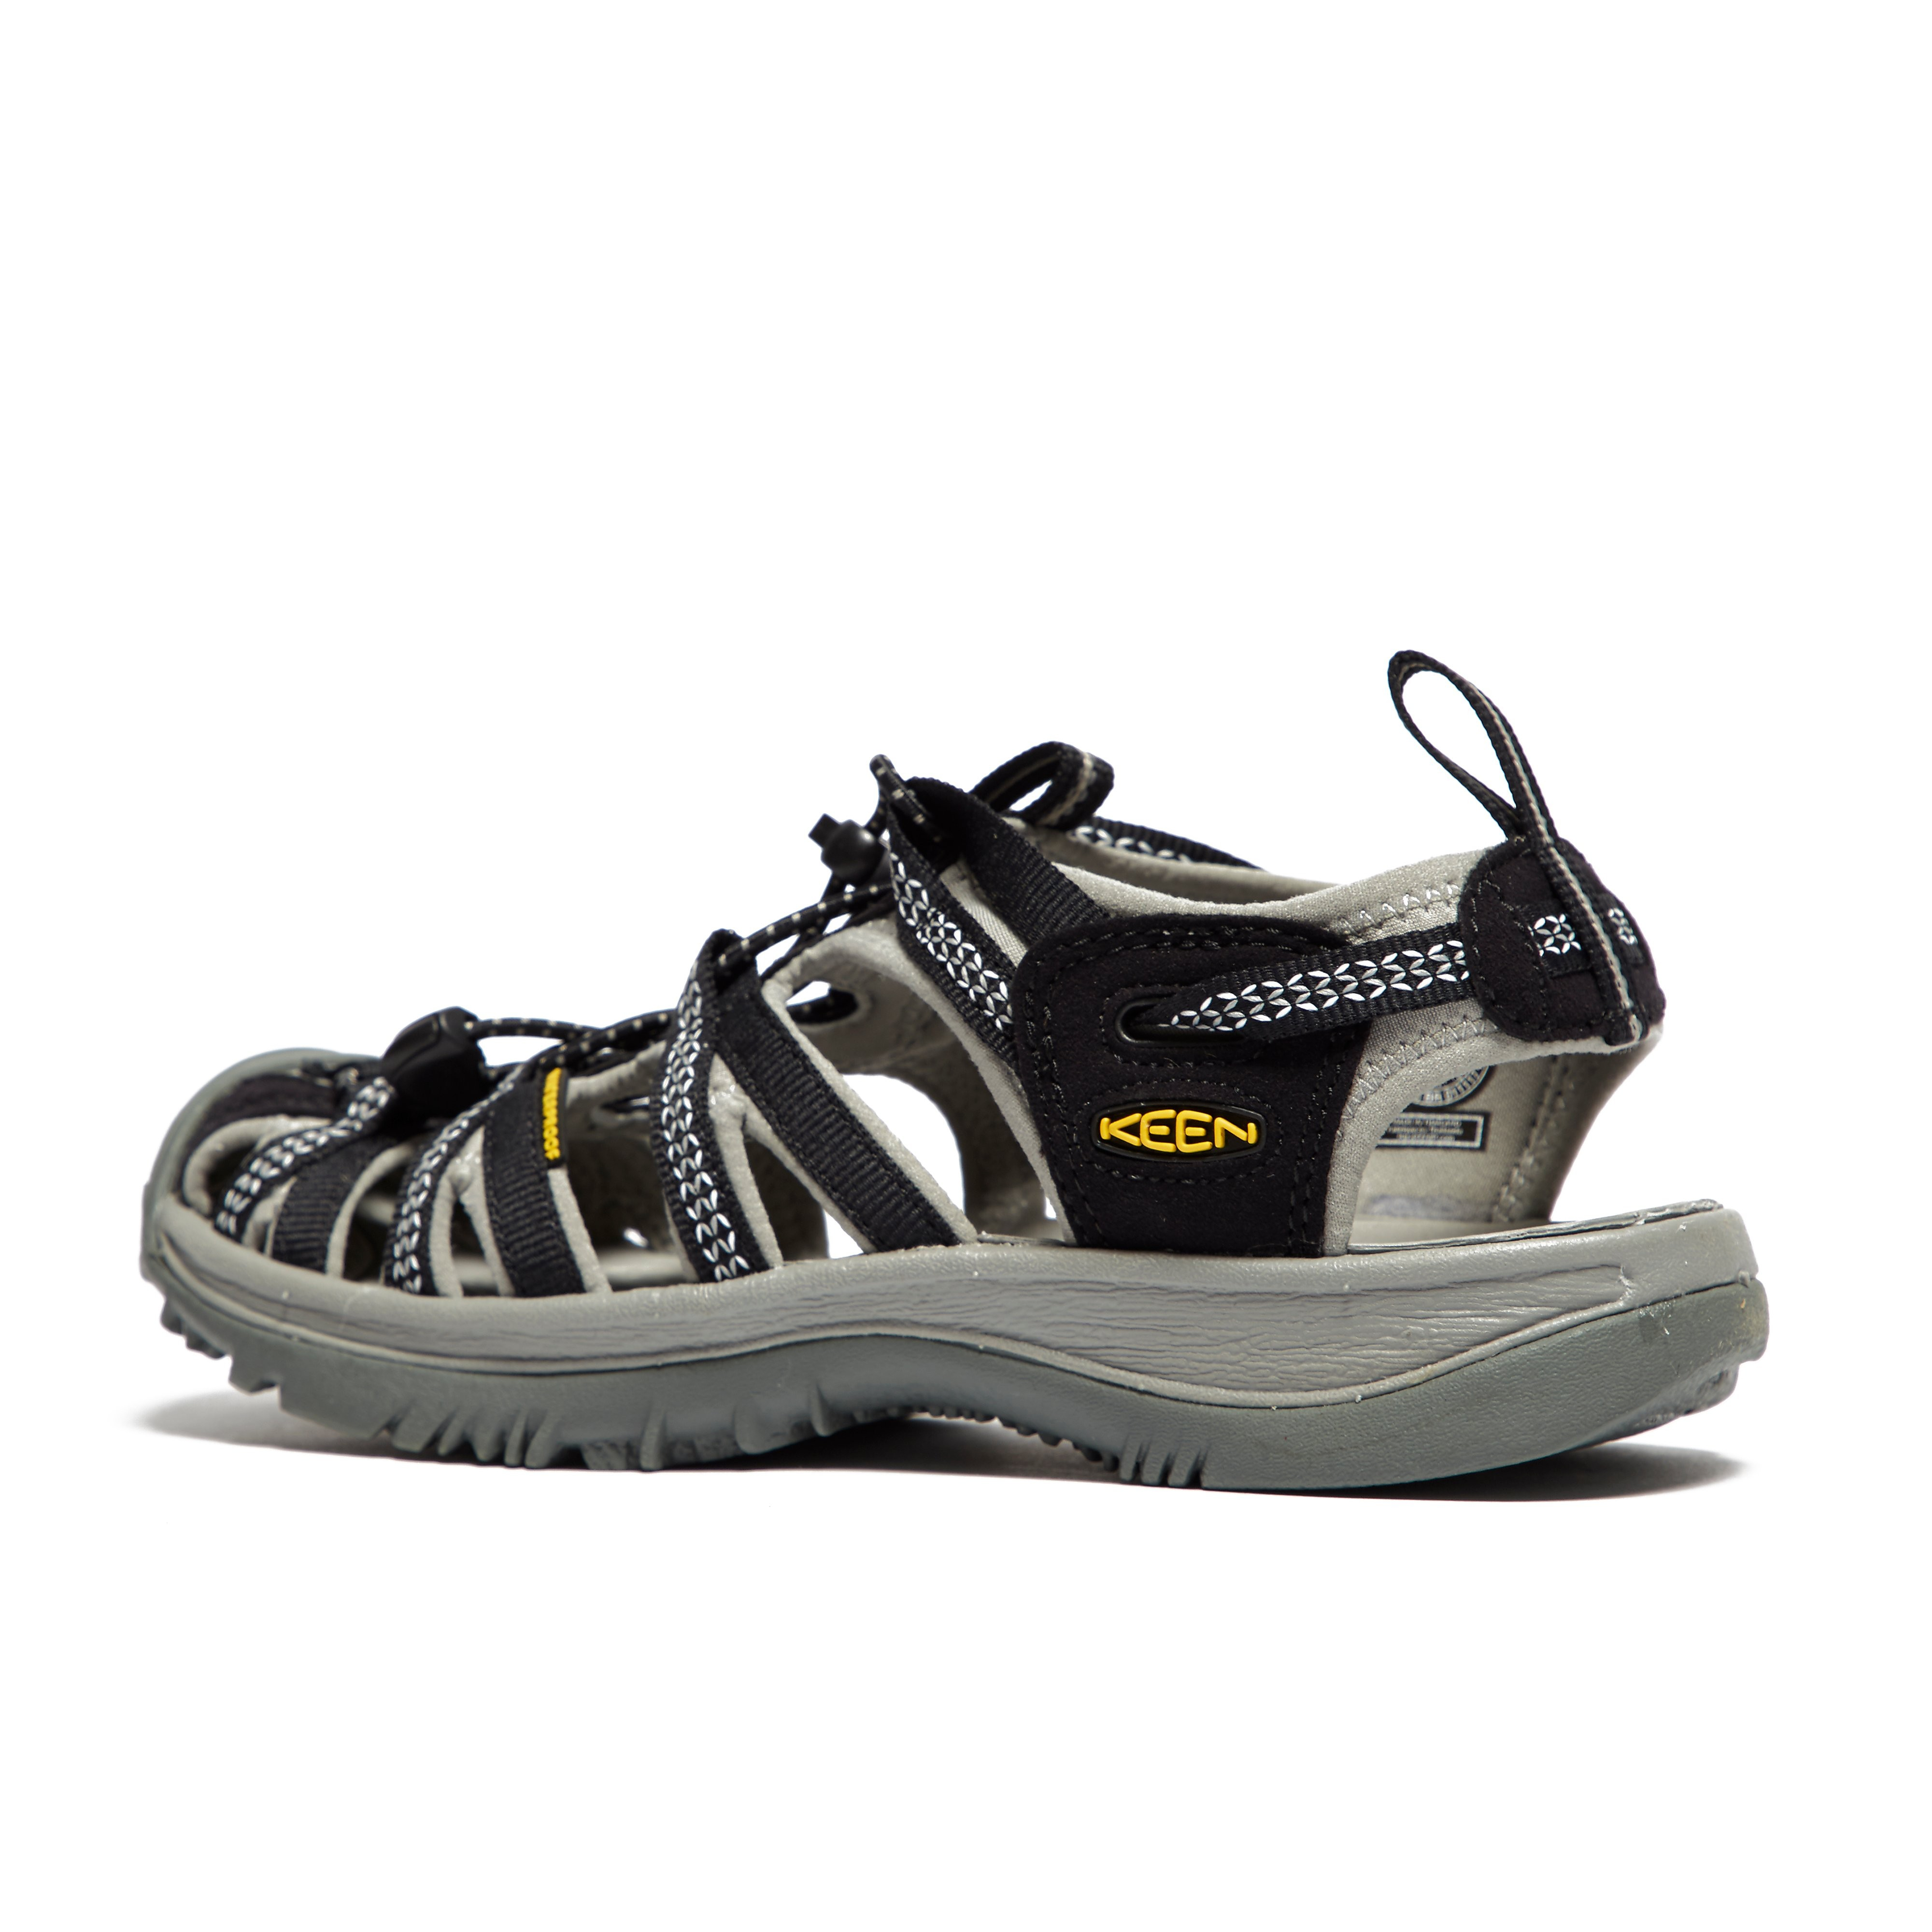 Keen Whisper Women's Walking Sandal